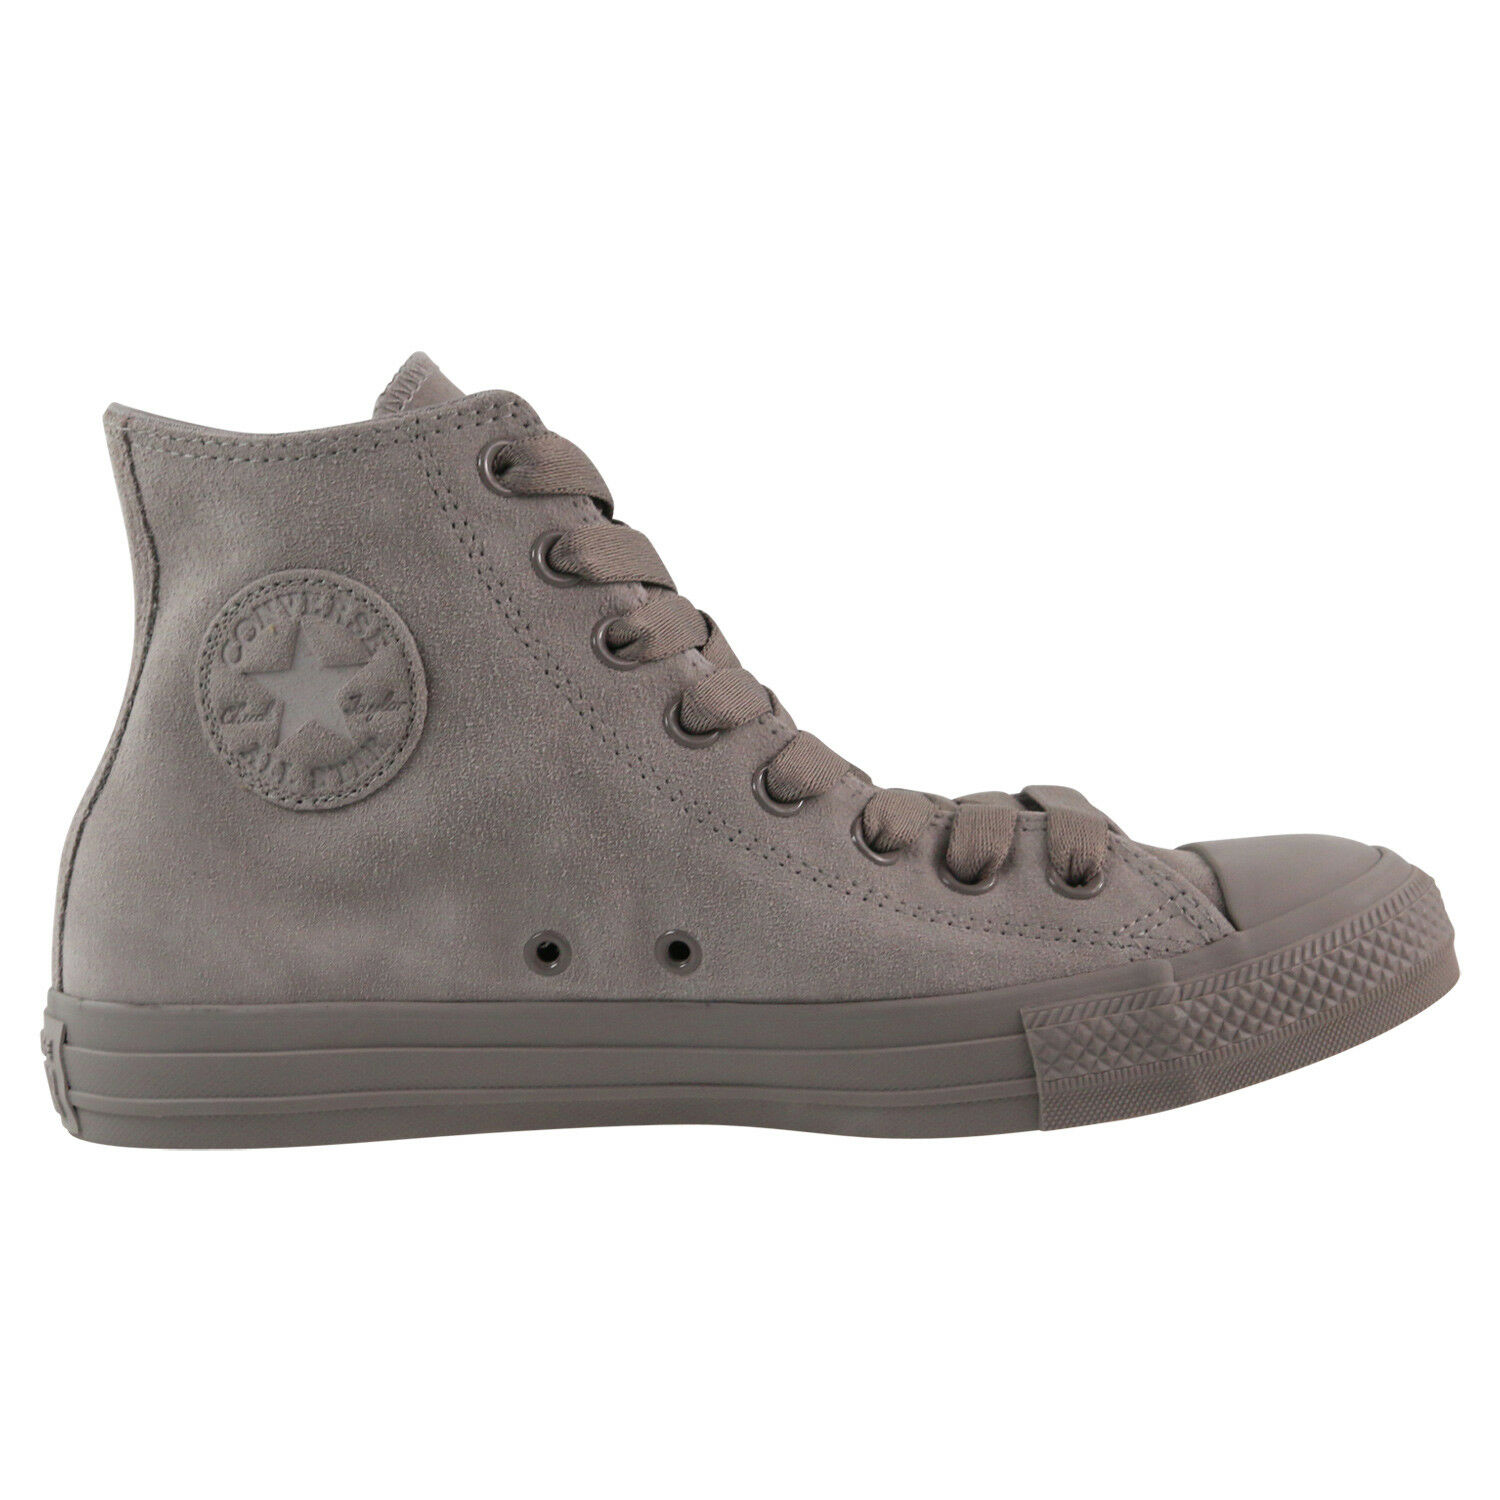 low priced e0729 2fdbe ... Converse Chuck Taylor Taylor Taylor All Star Leather Schuhe Turnschuhe  High-Top Turnschuhe Leder 0b4a87 ...